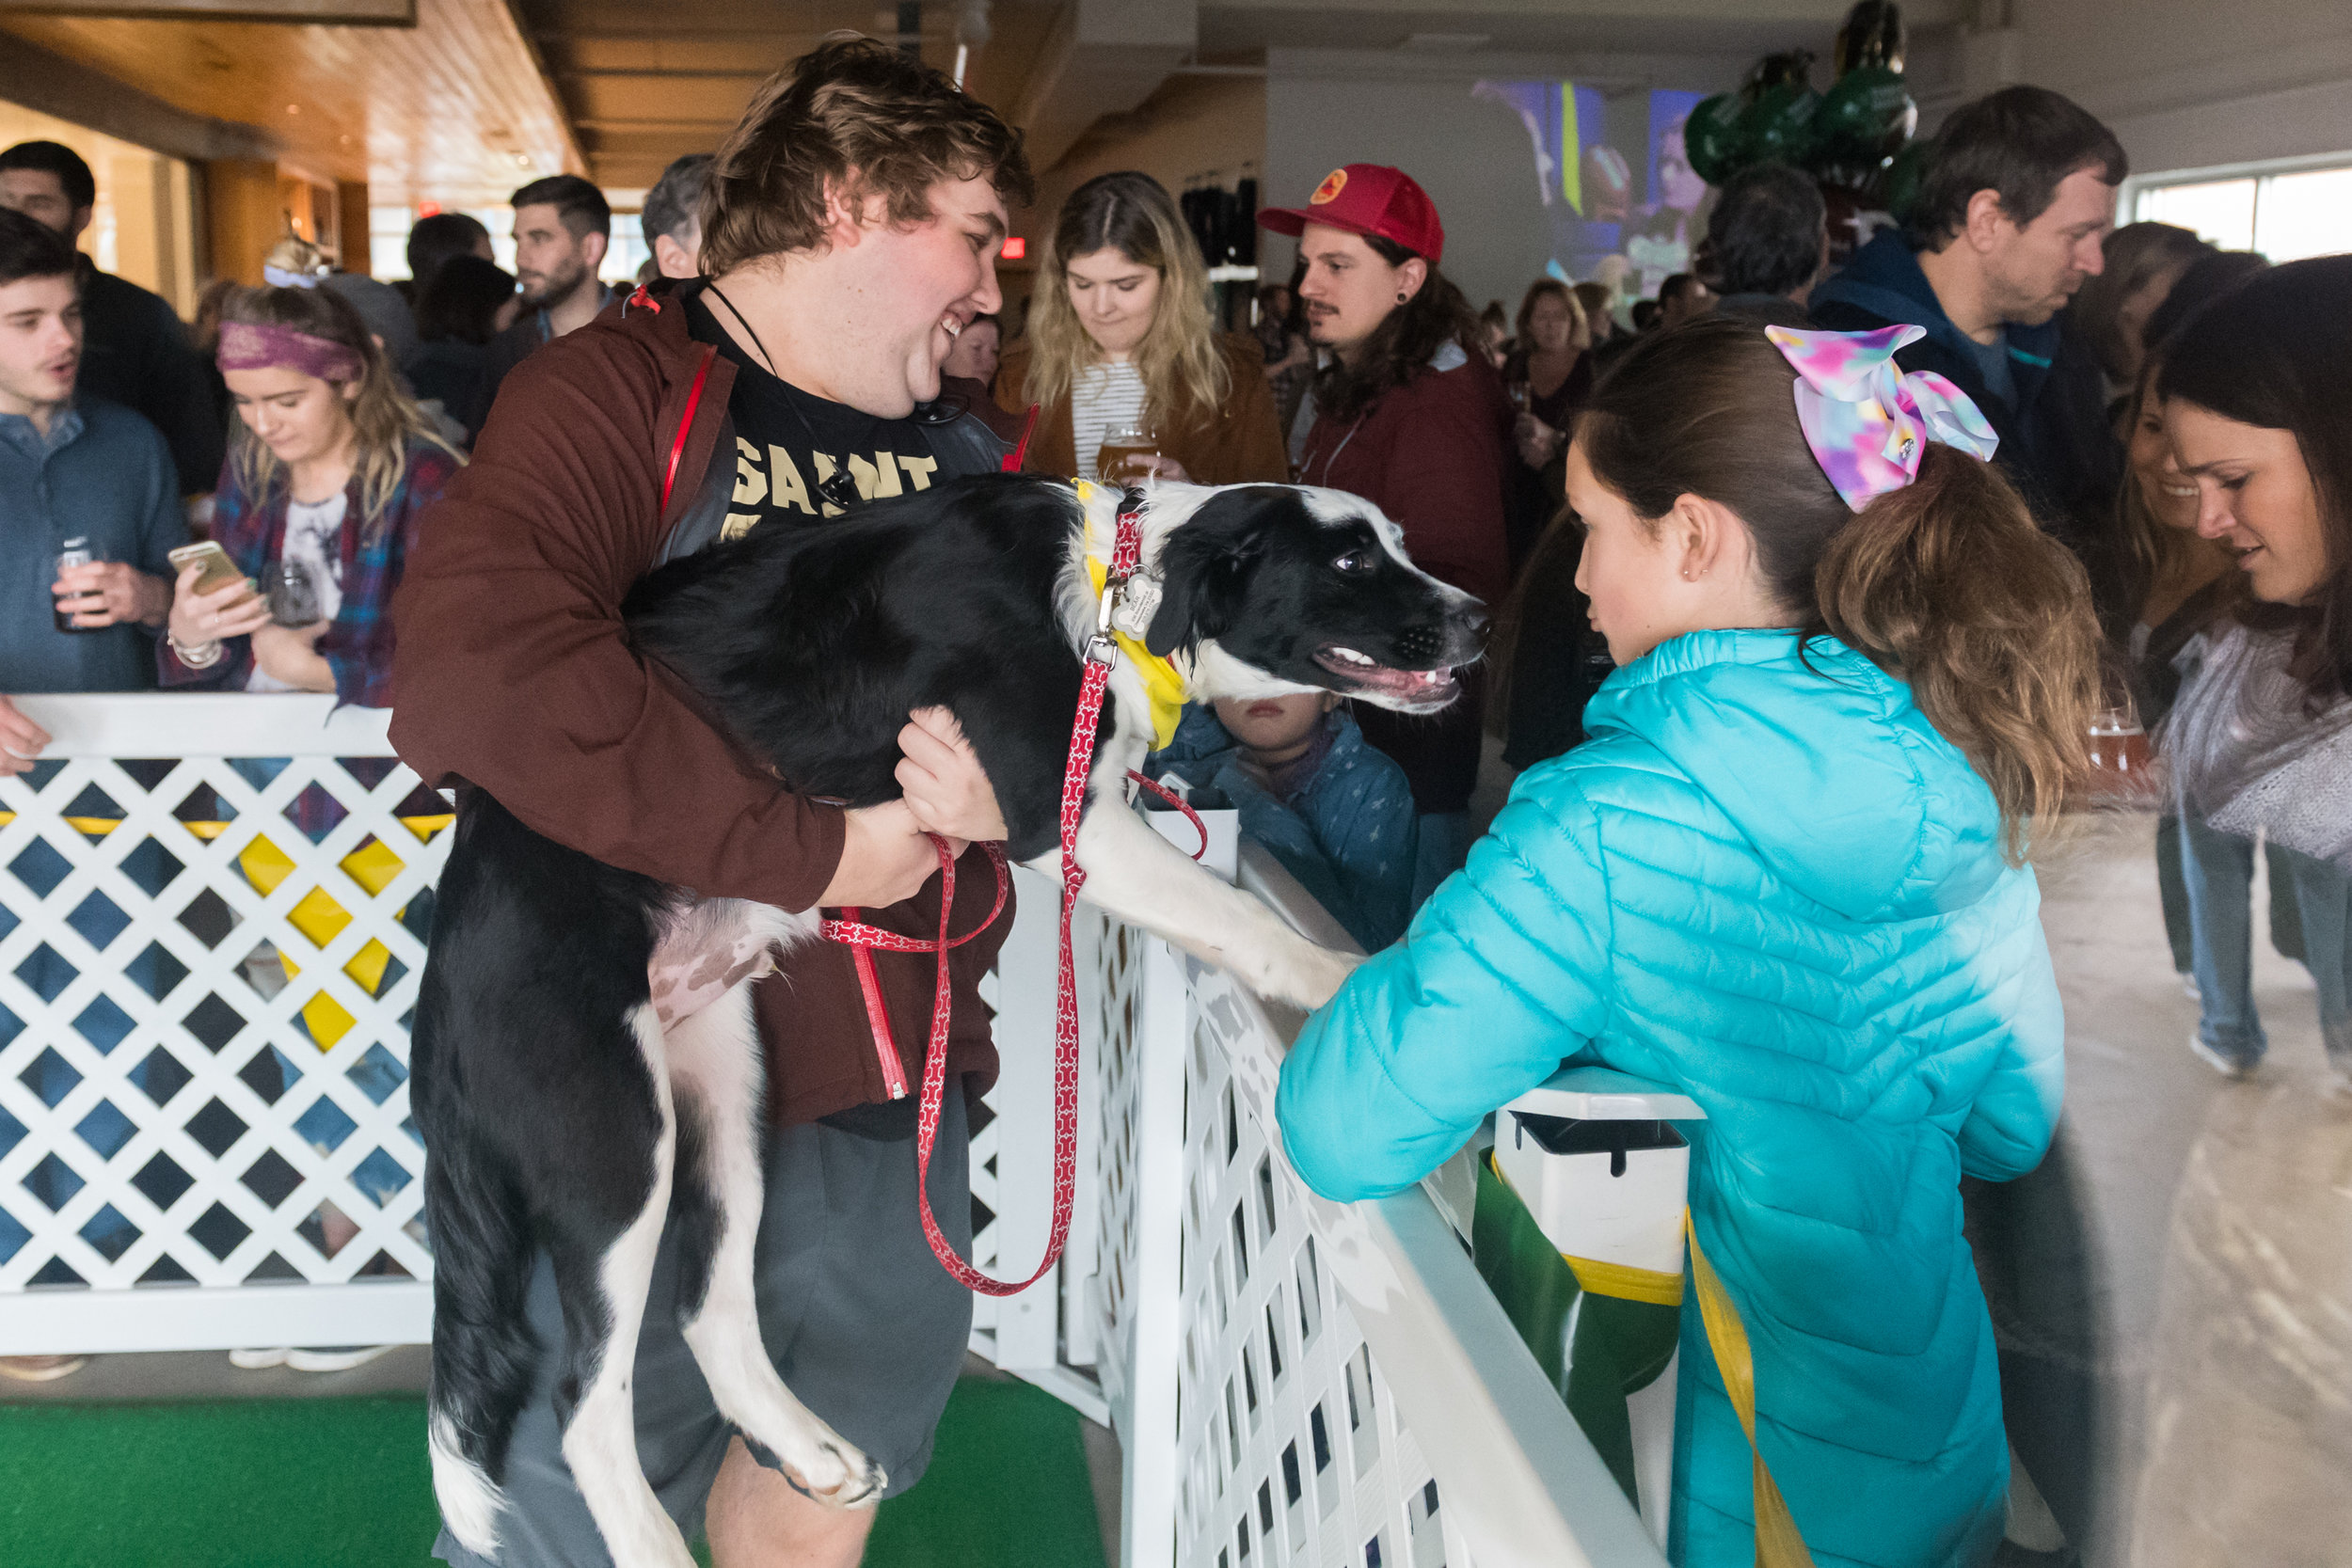 Nic Lee holds Bear up to meet fans during the Virginia Beach SPCA 2018 Puppy Bowl Tailgate Party held at Smartmouth Pilot House Sunday, February 4, 2018. Bear was awarded MVP, Most Valuable Puppy, at 14th annual Animal Planet Puppy Bowl.